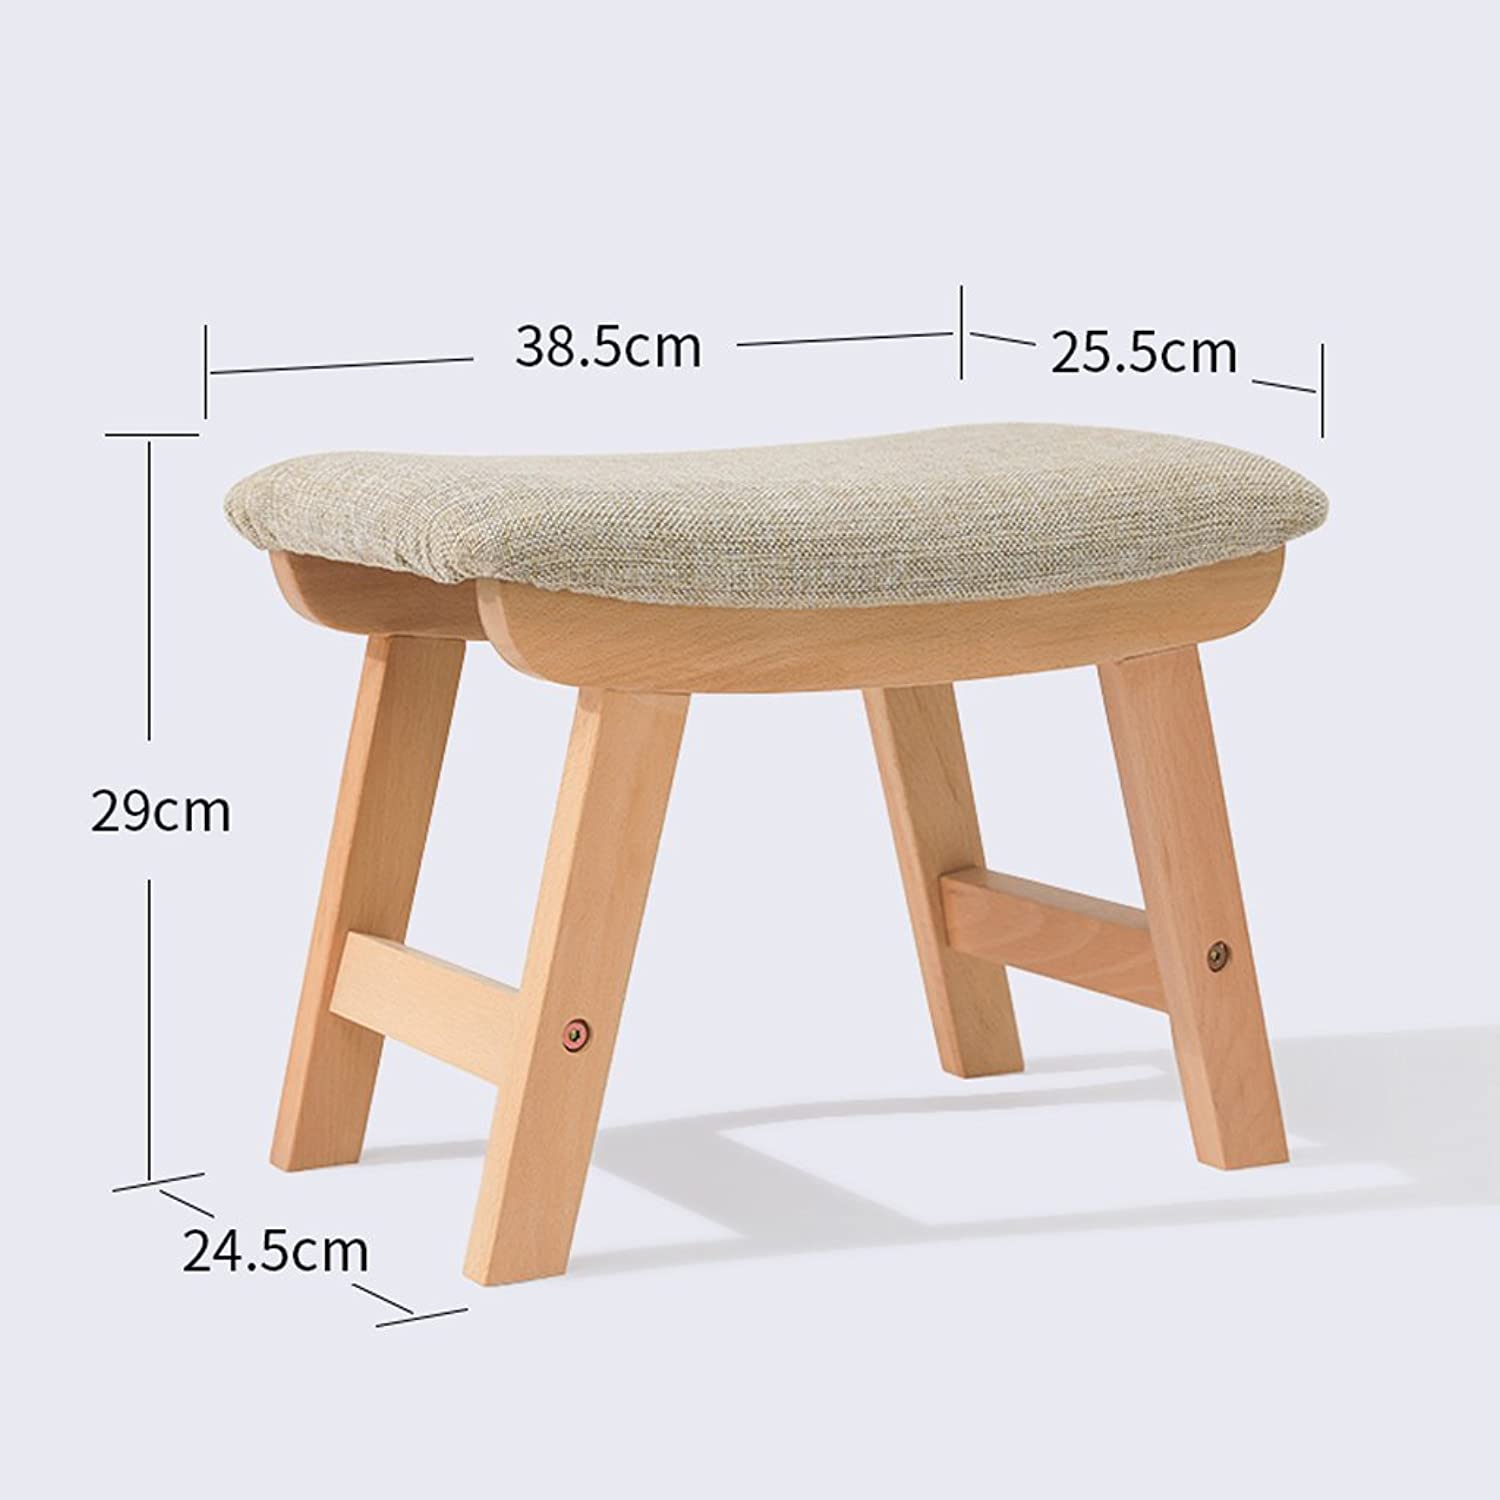 Stools Solid Wood Stool Fabric Home Stool Fashion Creative Sofa Stool Small Bench Living Room Simple Adult shoes Bench(L38.5cmW25.5cmH29cm) (color   A, Style   Lattice)